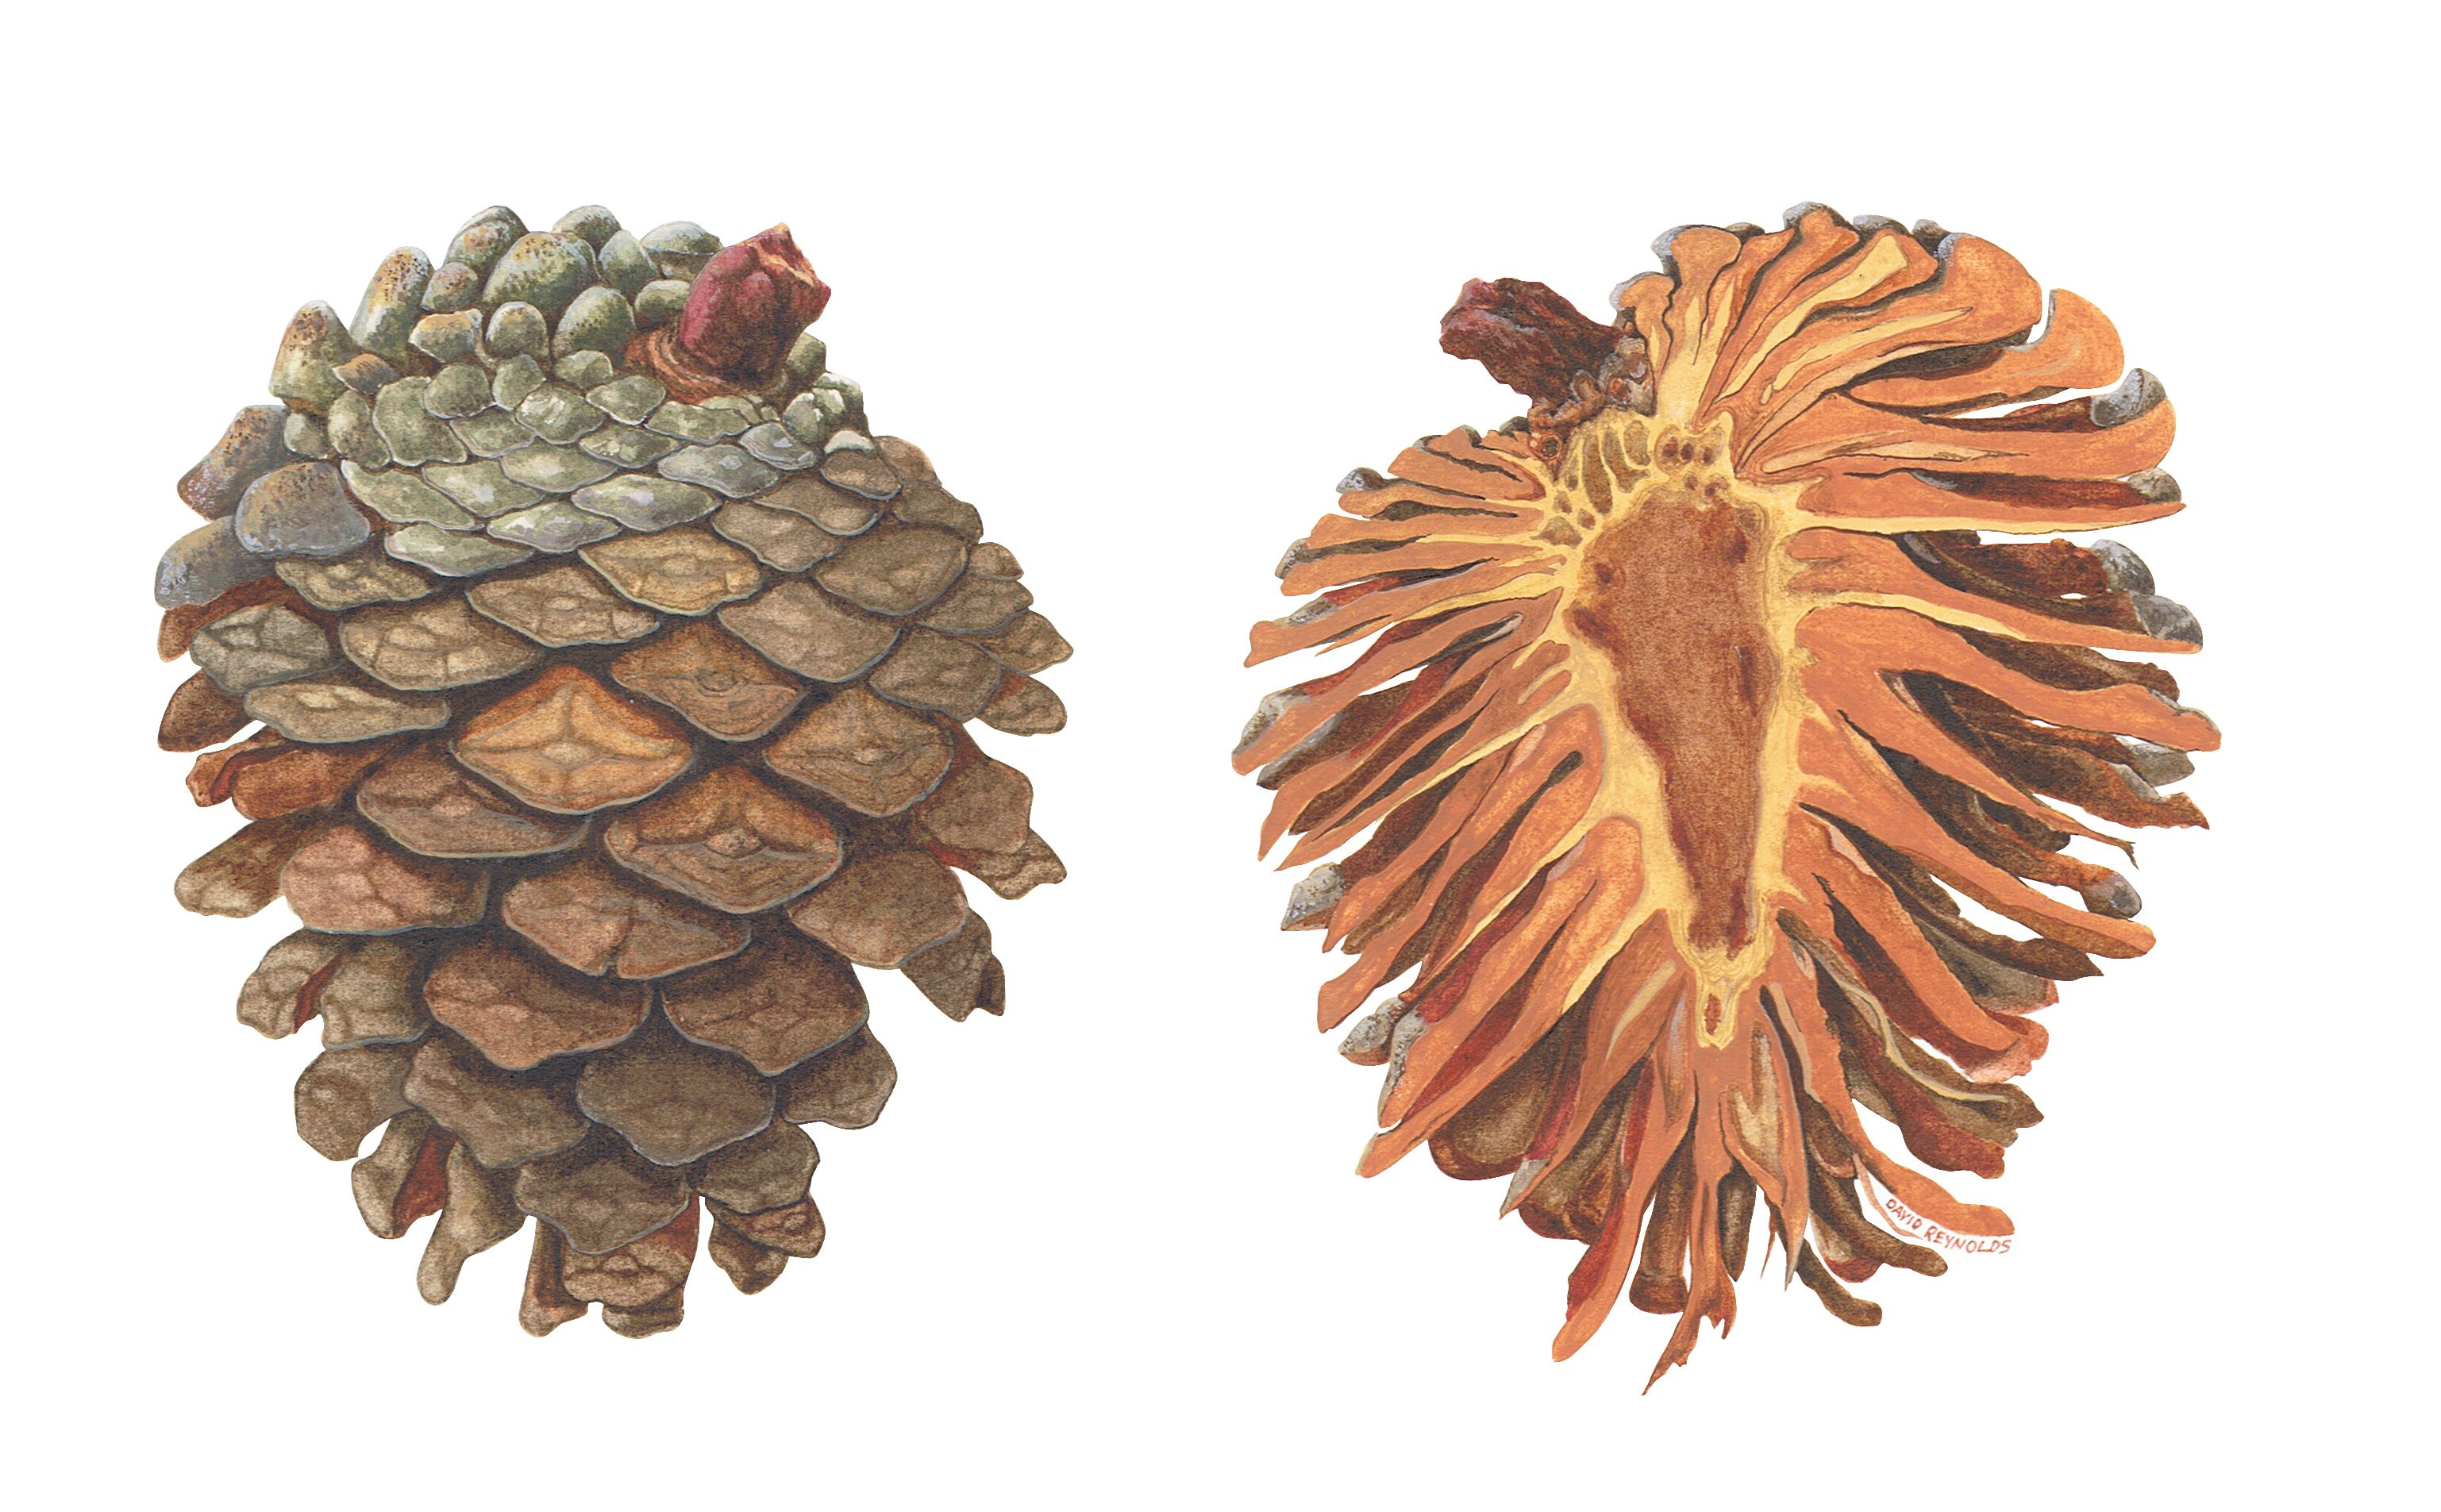 Pine cone dissection. I wanted to see what the inside looked like ...